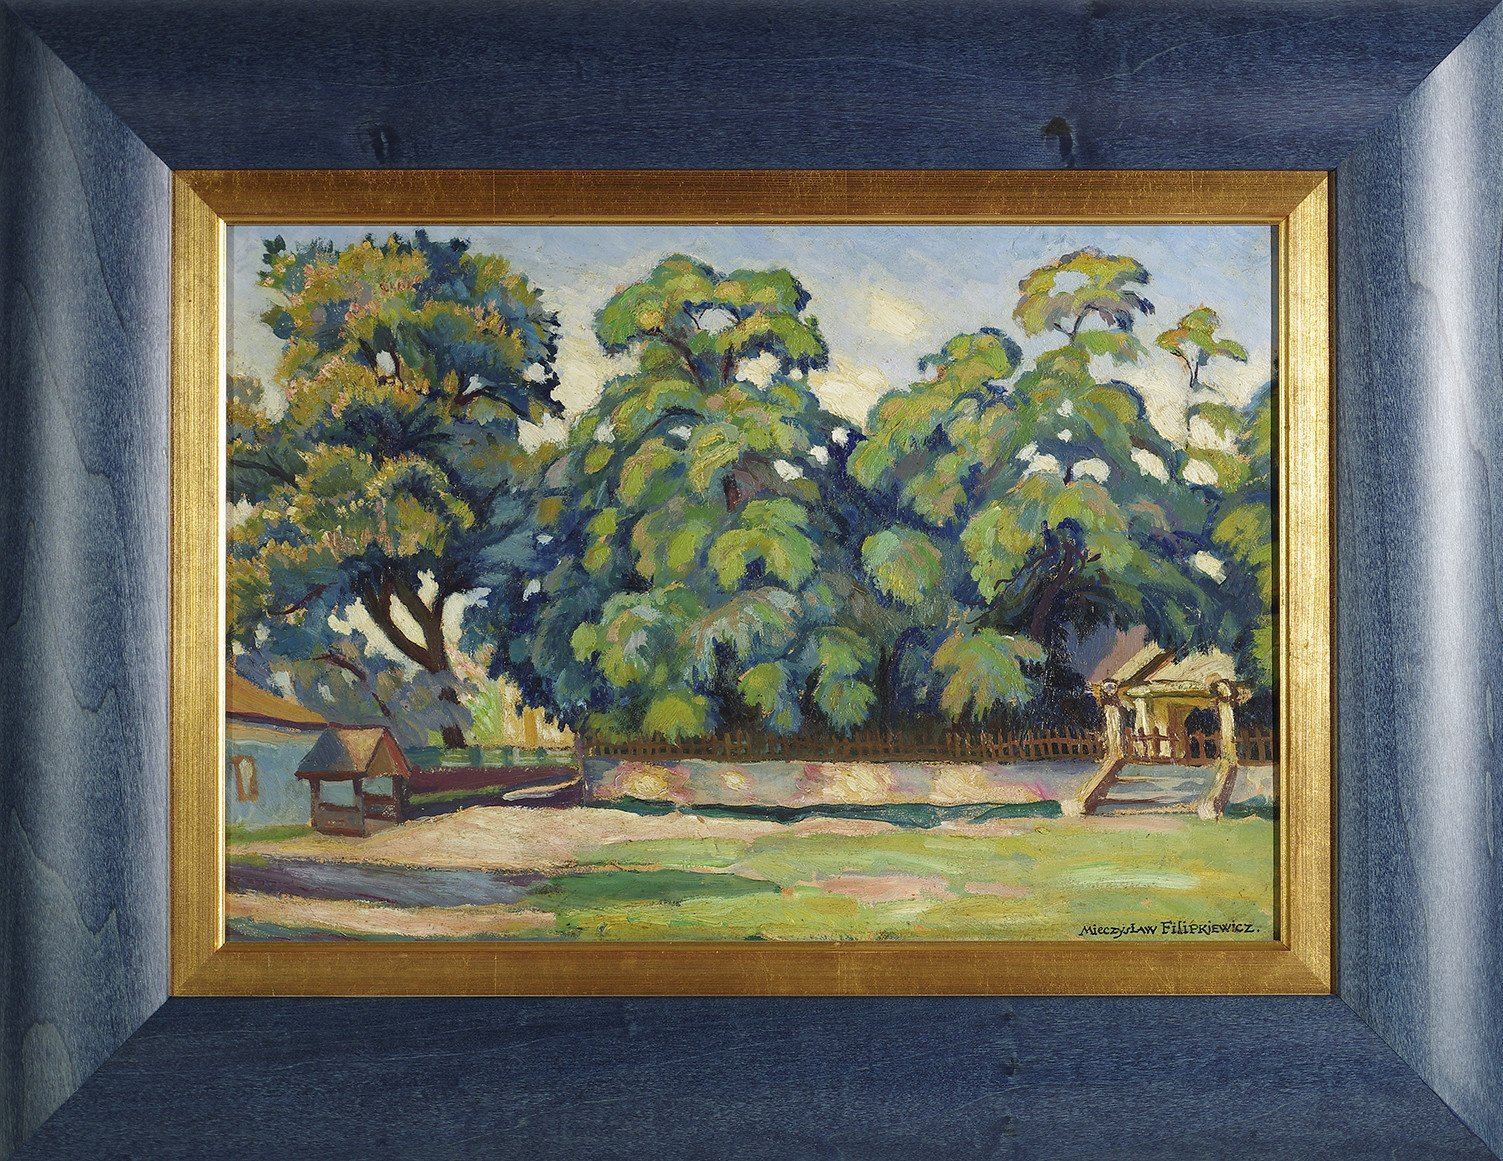 Oil Painting by M. Filipkiewicz, Early 20th C.